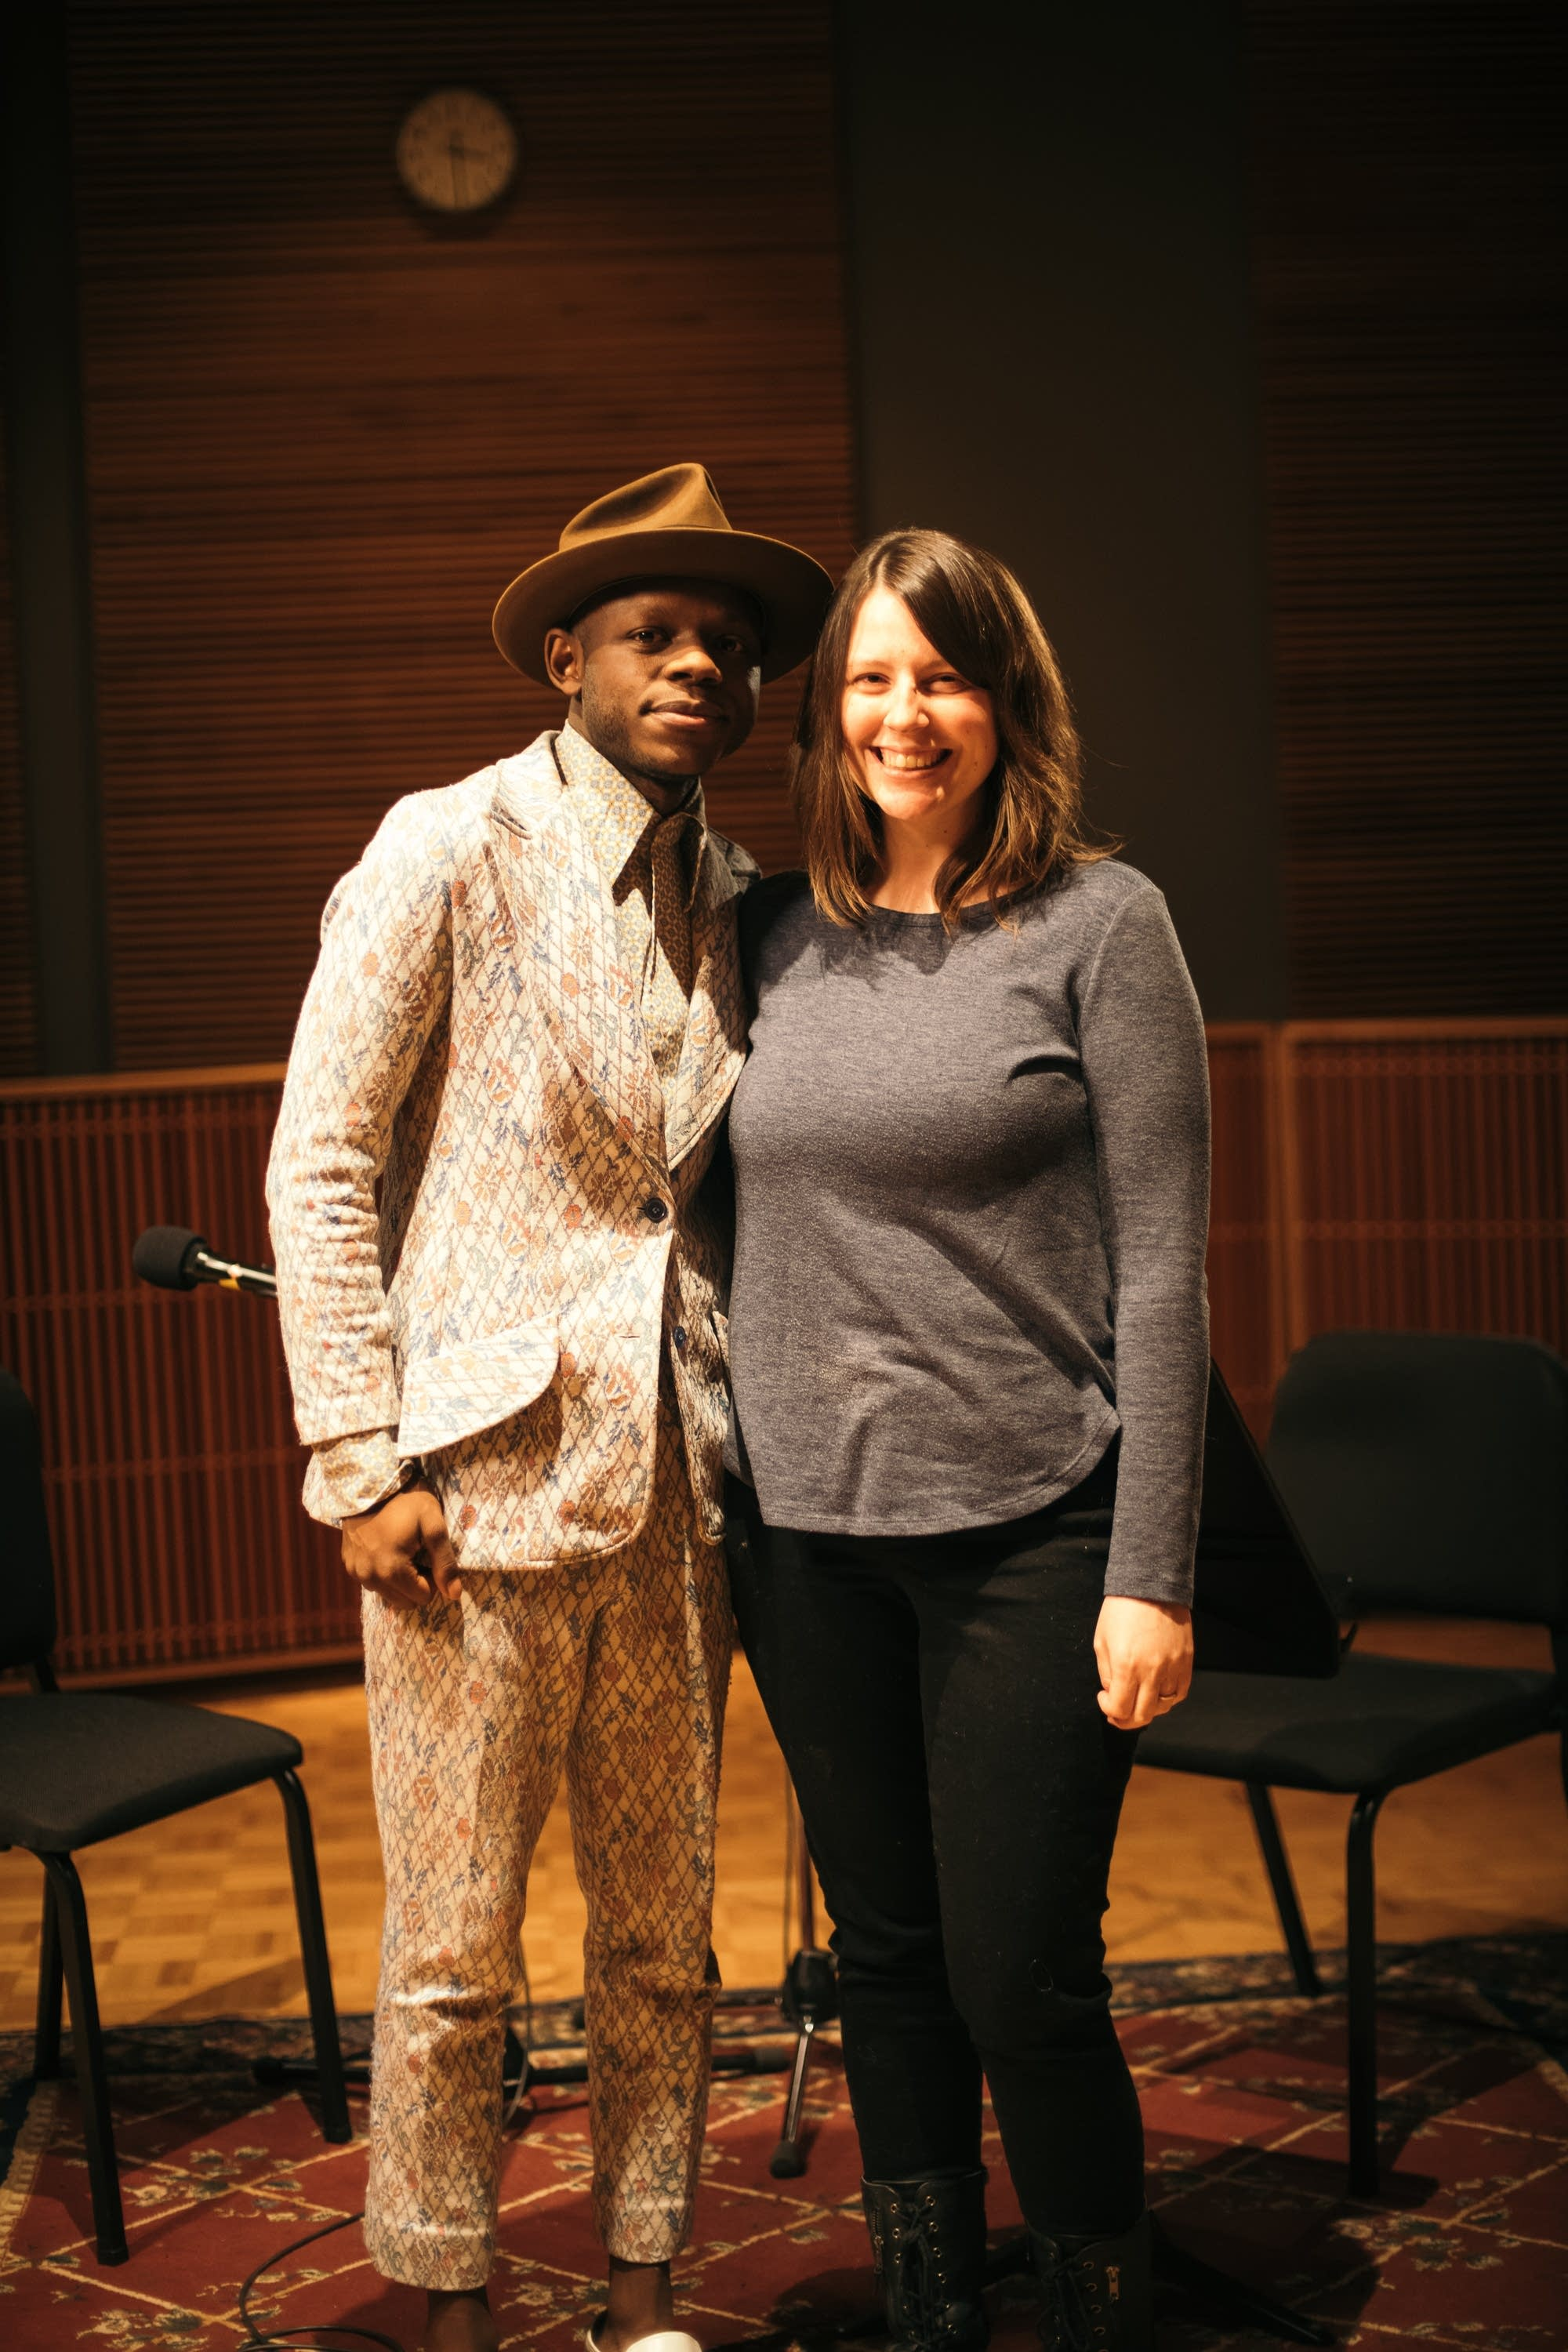 J.S. Ondara and host Andrea Swensson in The Current studio.